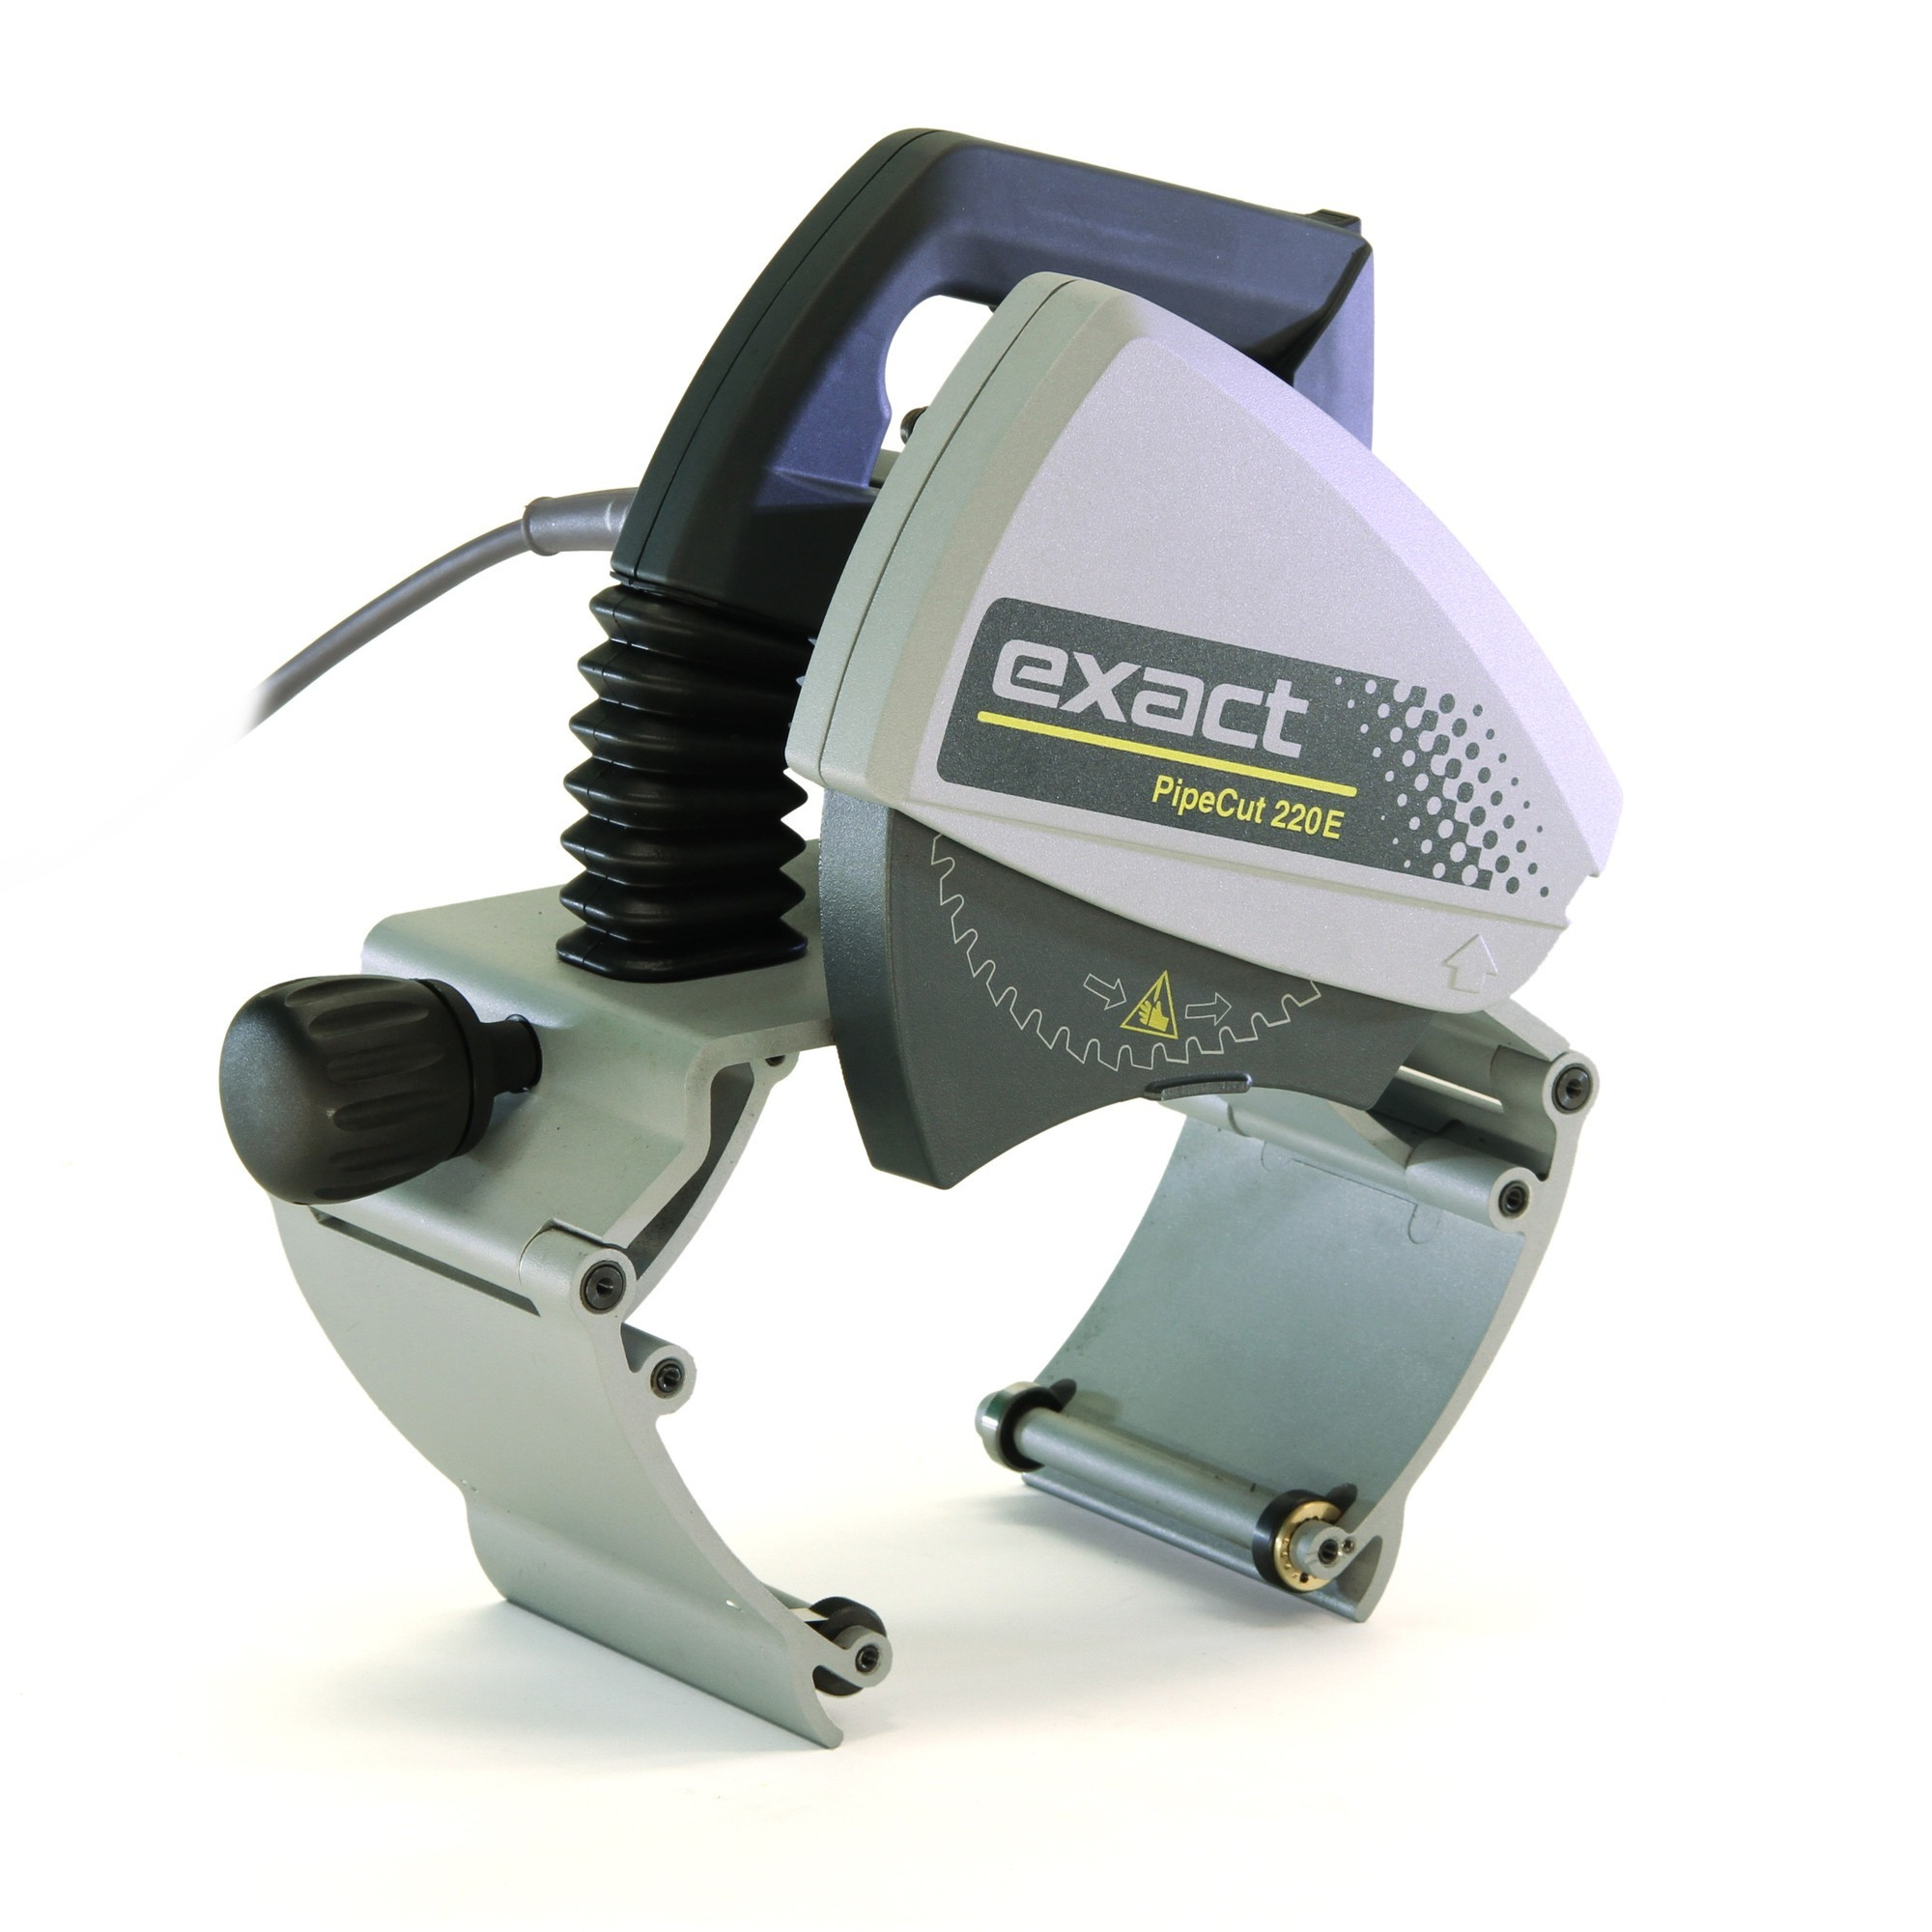 Exact PipeCut 220E System